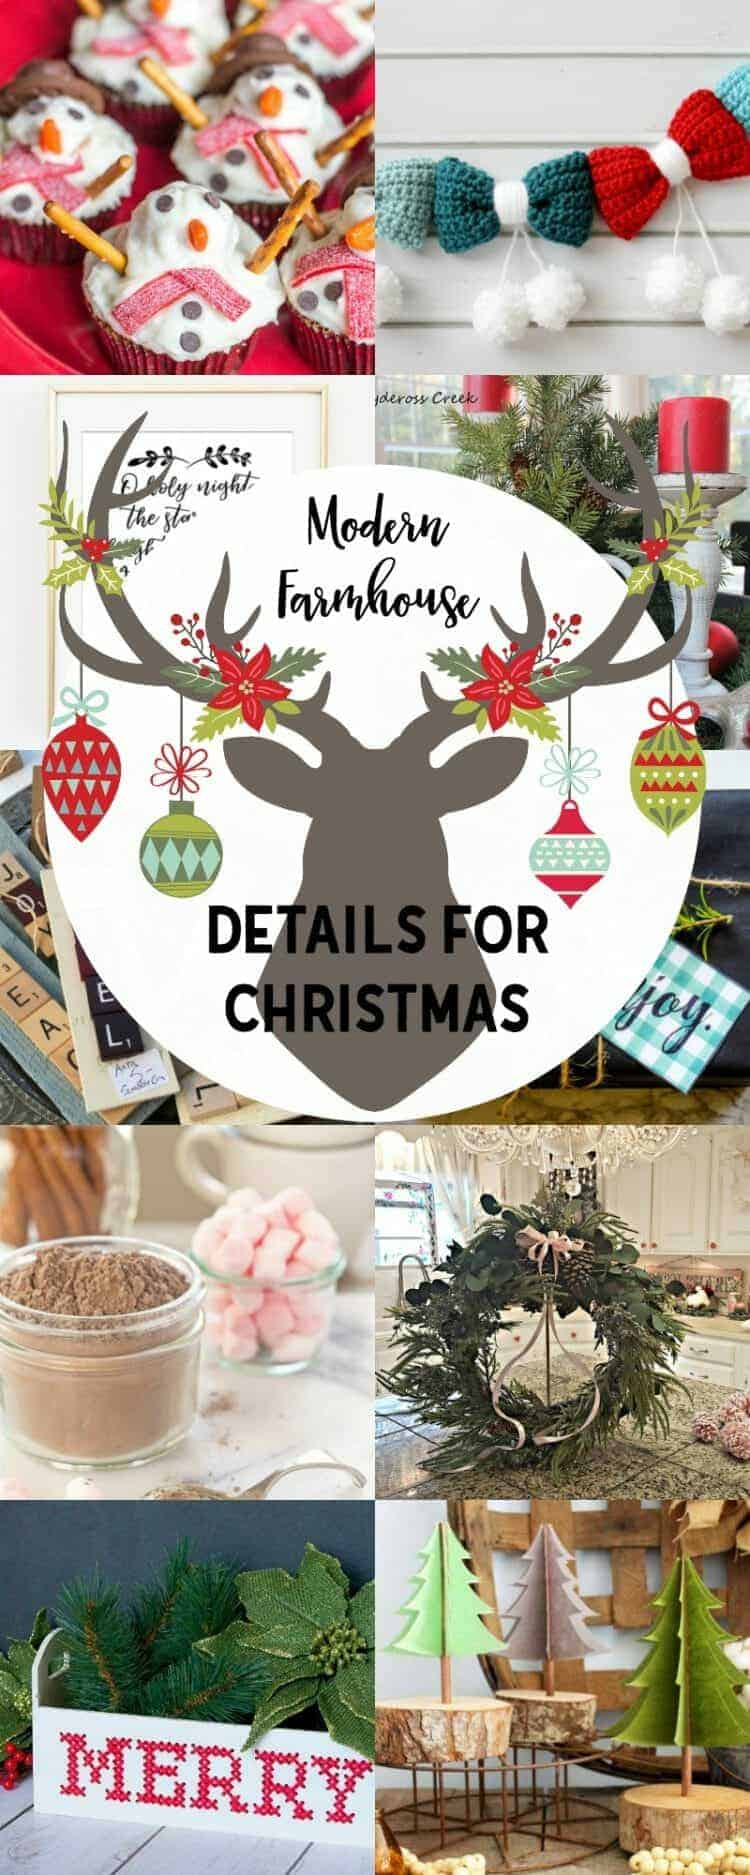 Farmhouse Details for Christmas